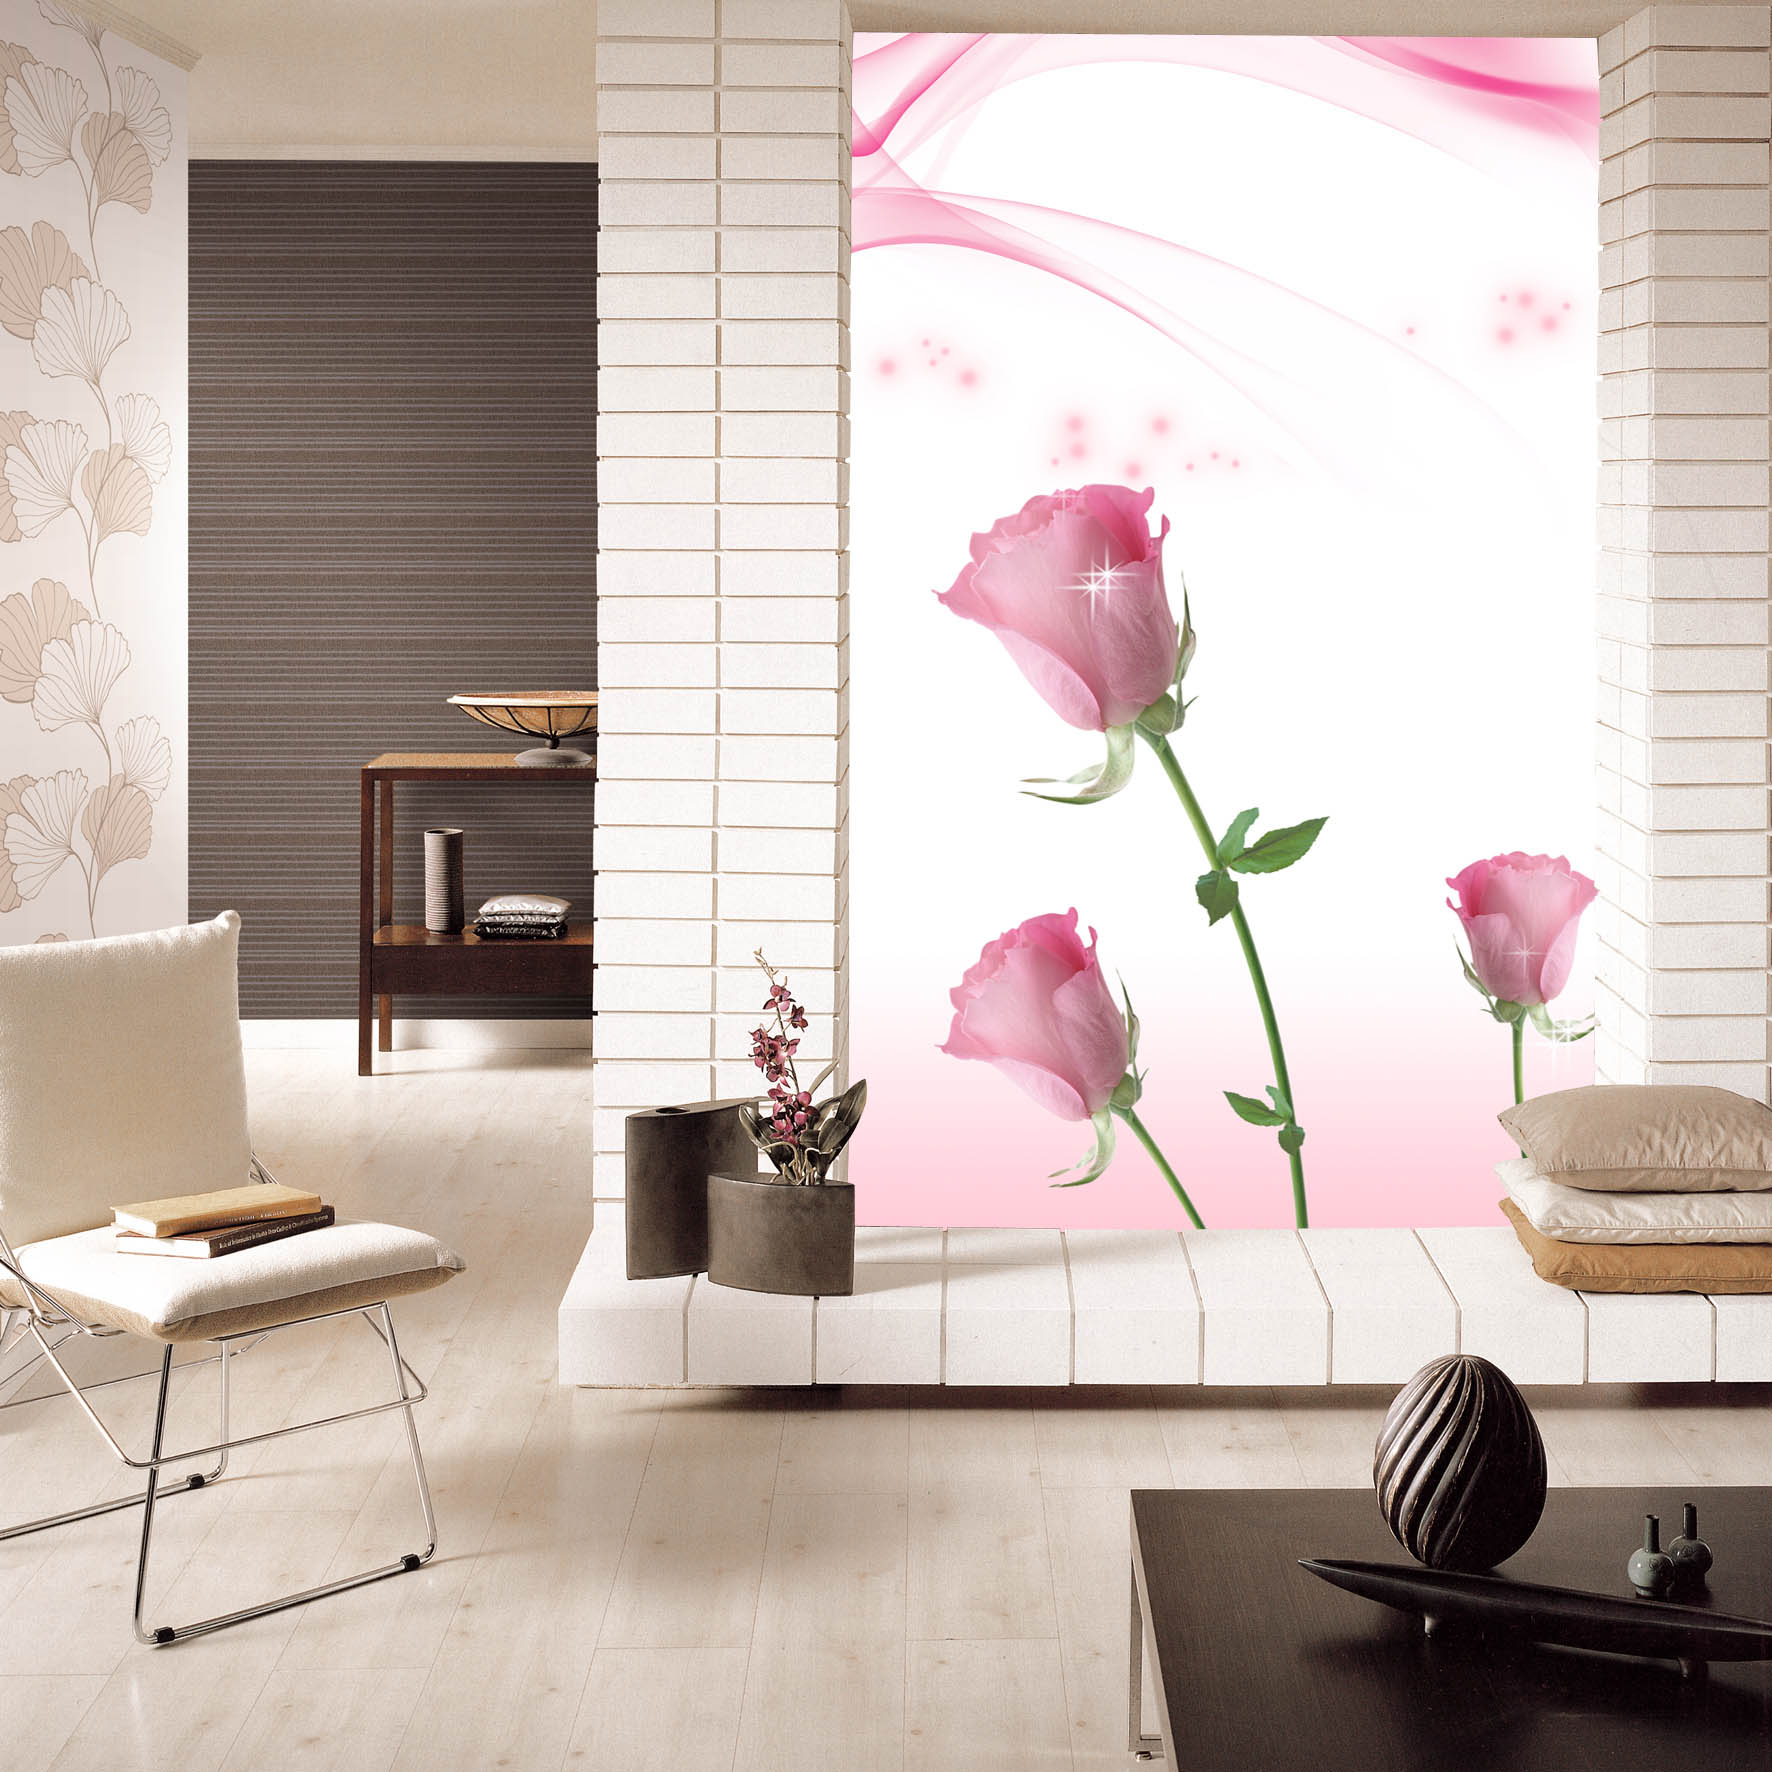 3D stereoscopic large mural custom wallpaper the living room backdrop bedroom fabric wall paper murals fashion romantic roses brooklyn black and white wallpaper mural photo wallpaper 3d mural large wall painting mural backdrop stereoscopic wallpaper